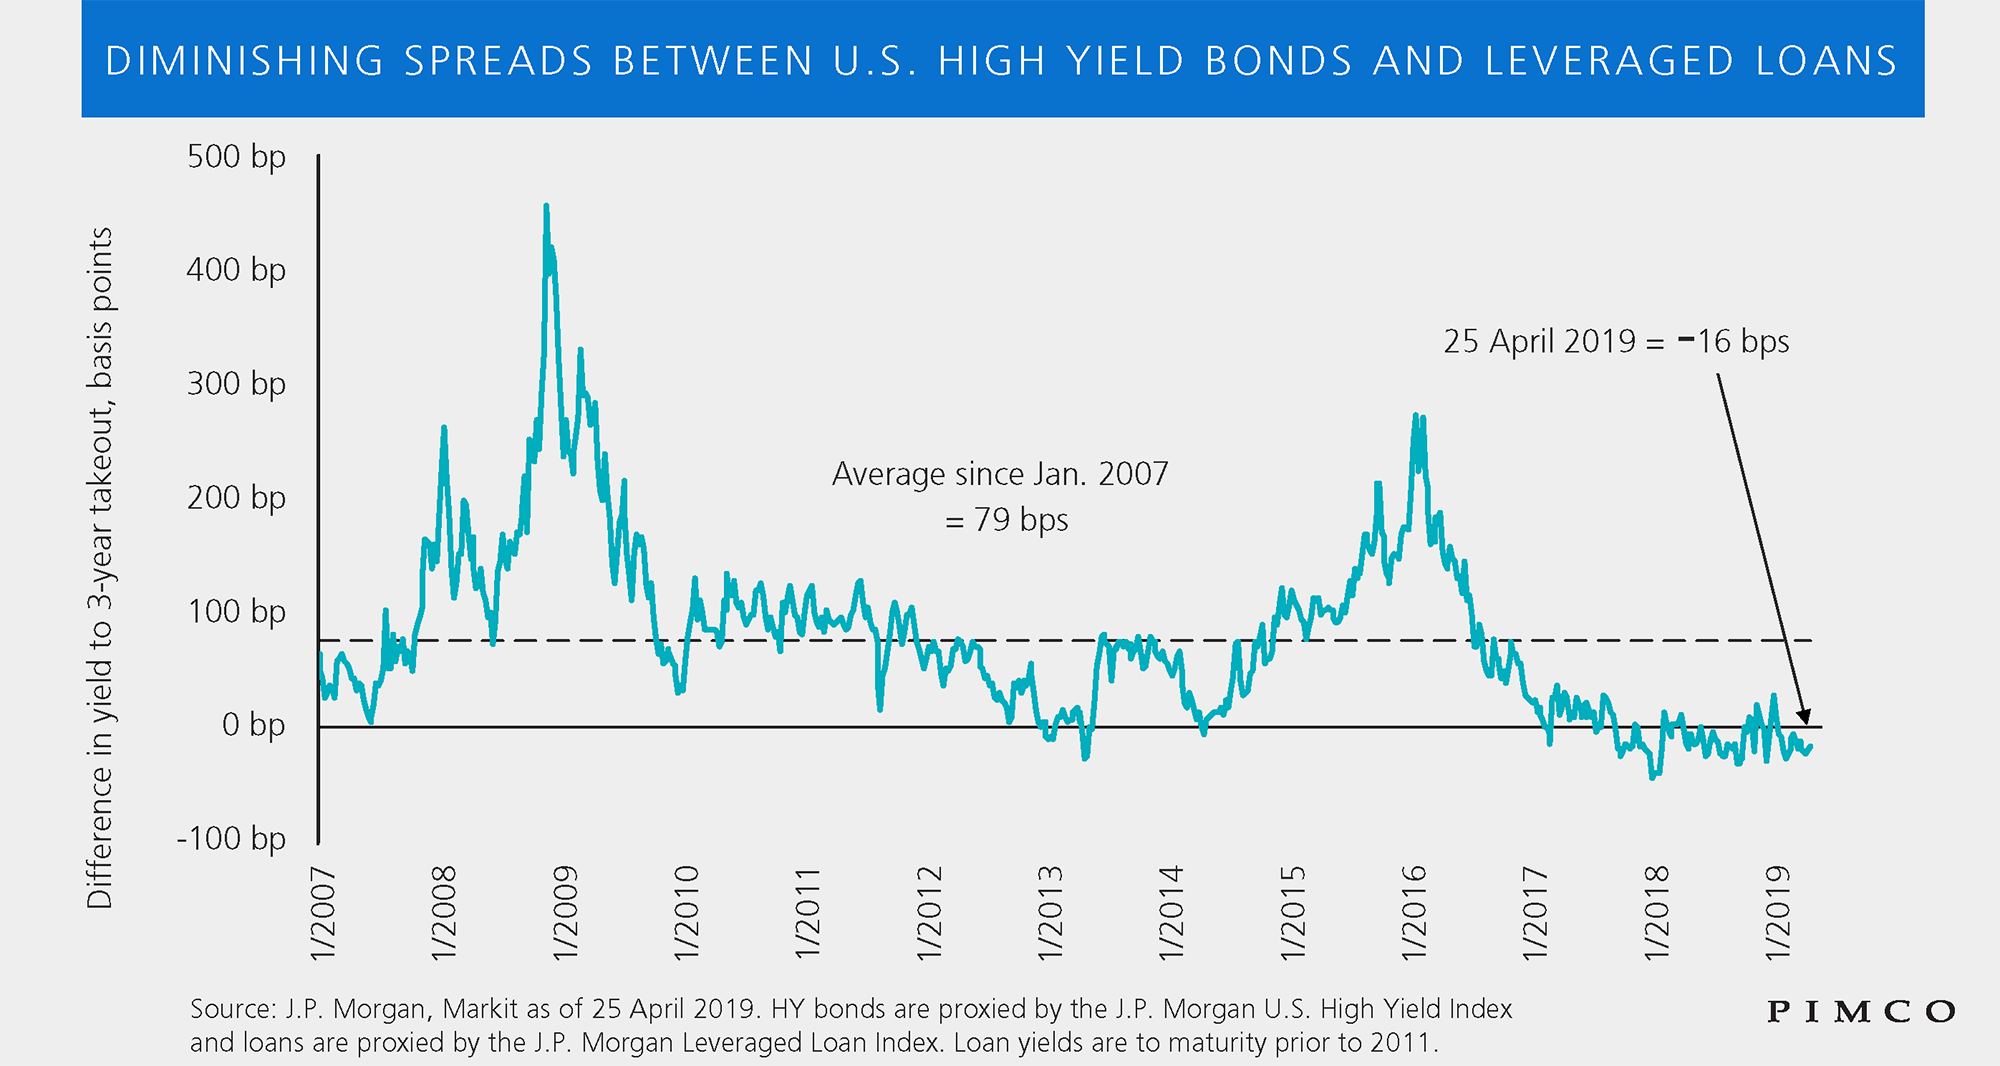 The figure shows a line graph of the spread between high-yield bonds to leveraged loans, from 2007 through April 2019, expressed in basis points. The graph shows in 2019 the spread as negative 10 basis points. It also shows how the spread has been in this inverted position more than half of the time since early 2018. The graph shows an average spread over the time period of 79 basis points (bps), along with peaks of about 280 bps in 2008, 450 bps in 2009, and 280 bps in 2016. Since the last peak, spreads have trended downward, and have gone as low as negative as roughly 30 basis points around the beginning of 2018.